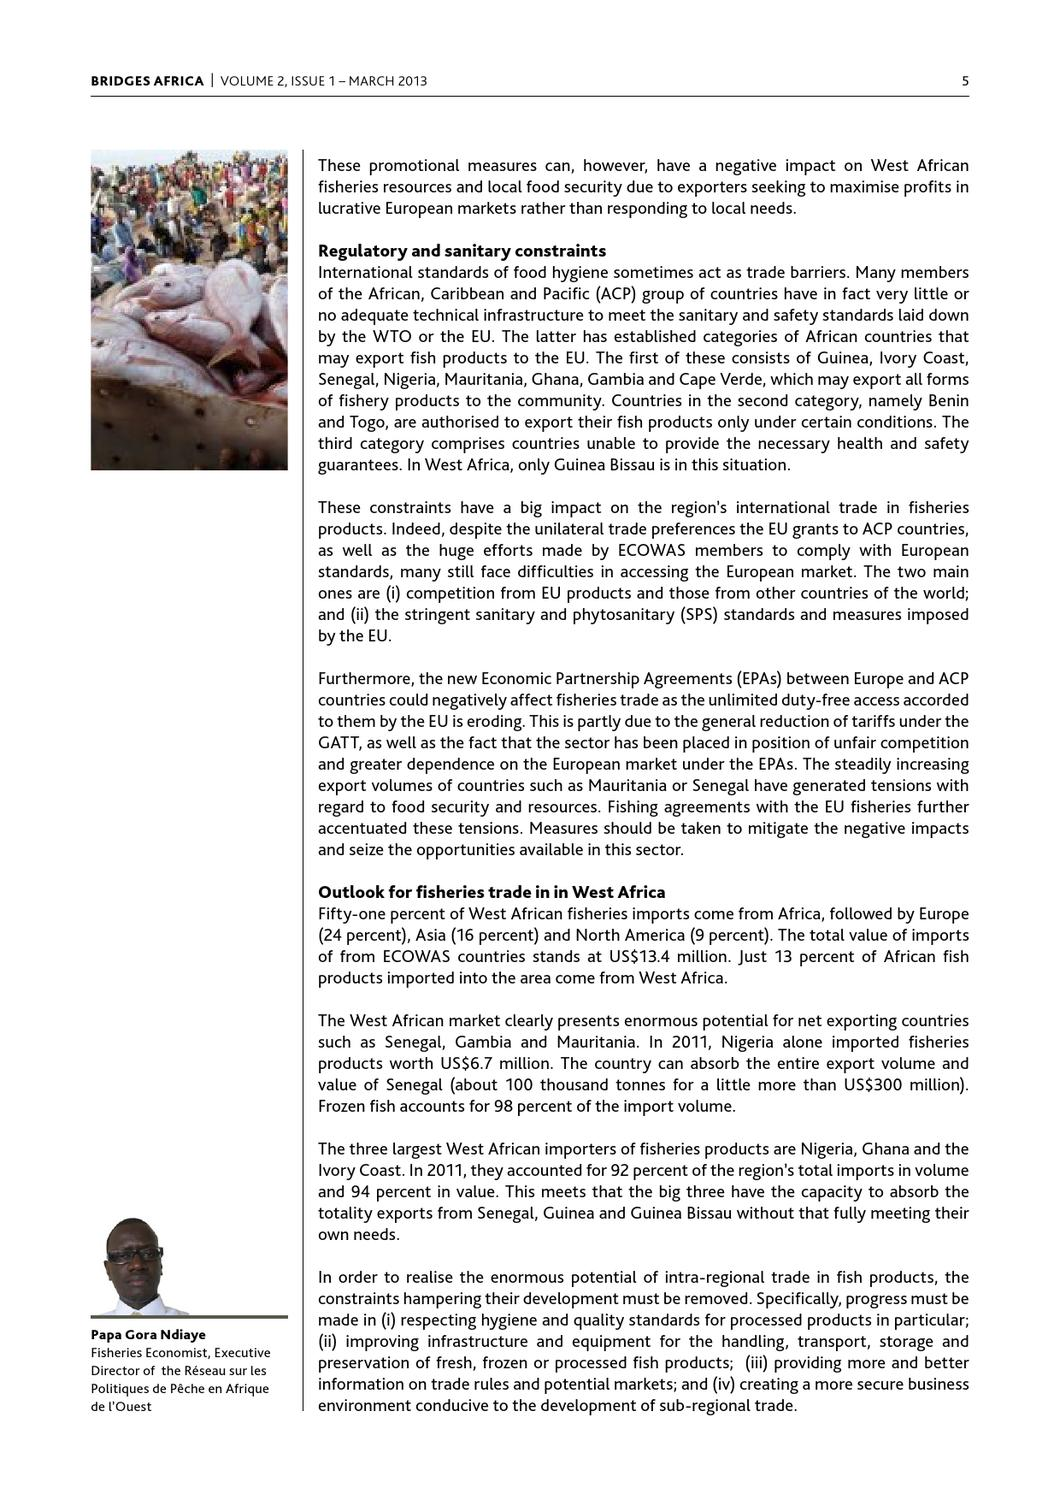 Bridges Africa - March 2013 by ICTSD - issuu